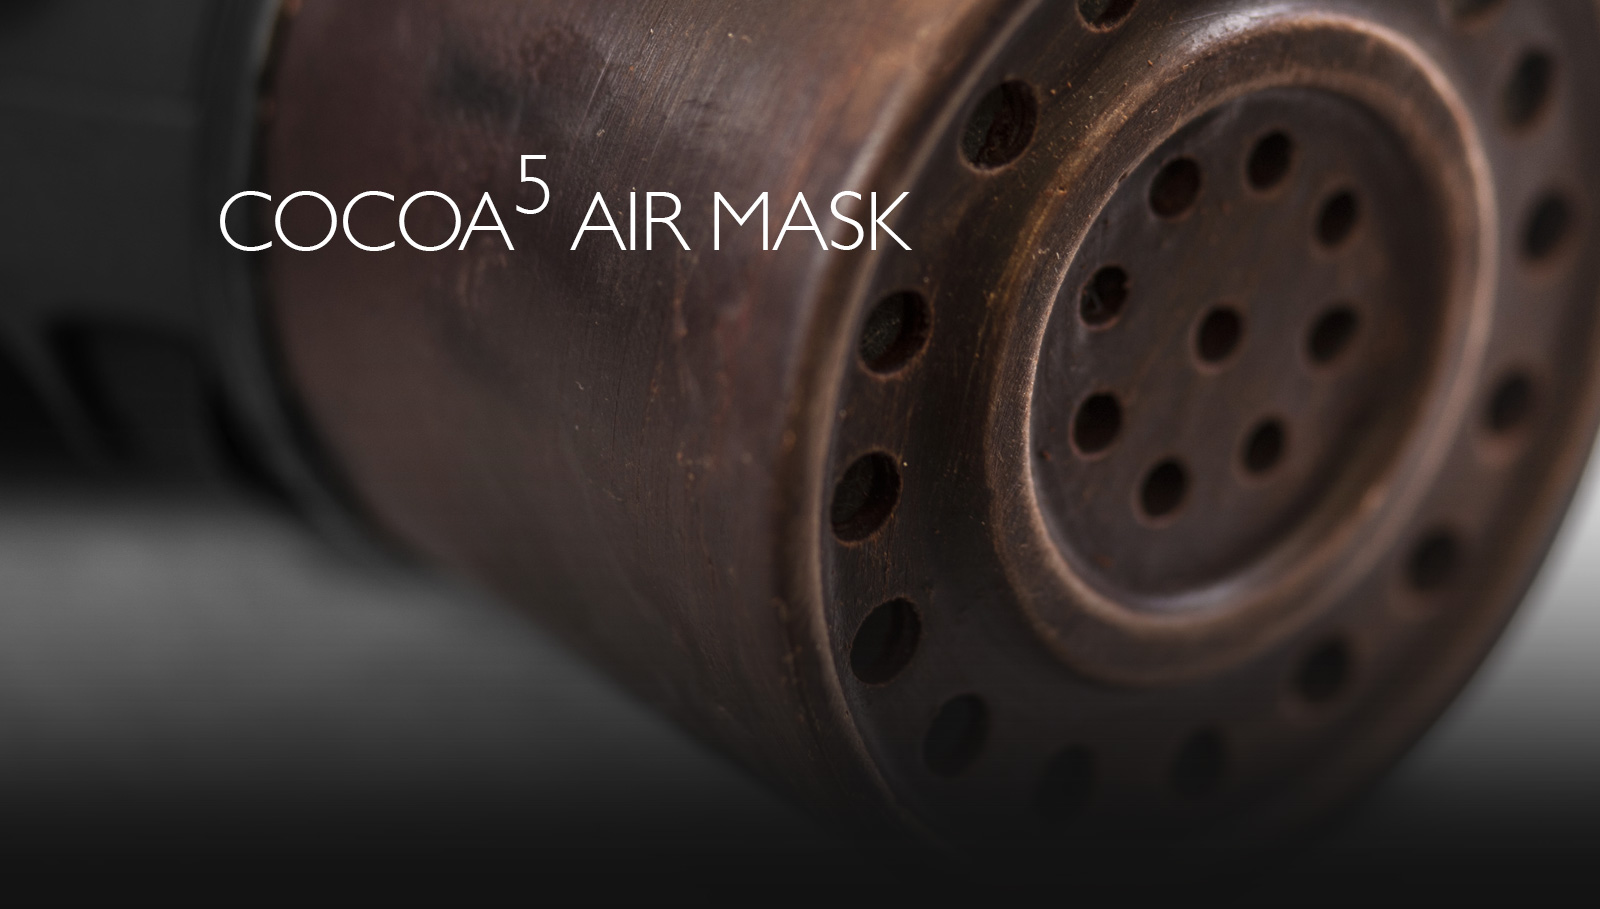 Cocoa-Air-Mask-1-black-detail3